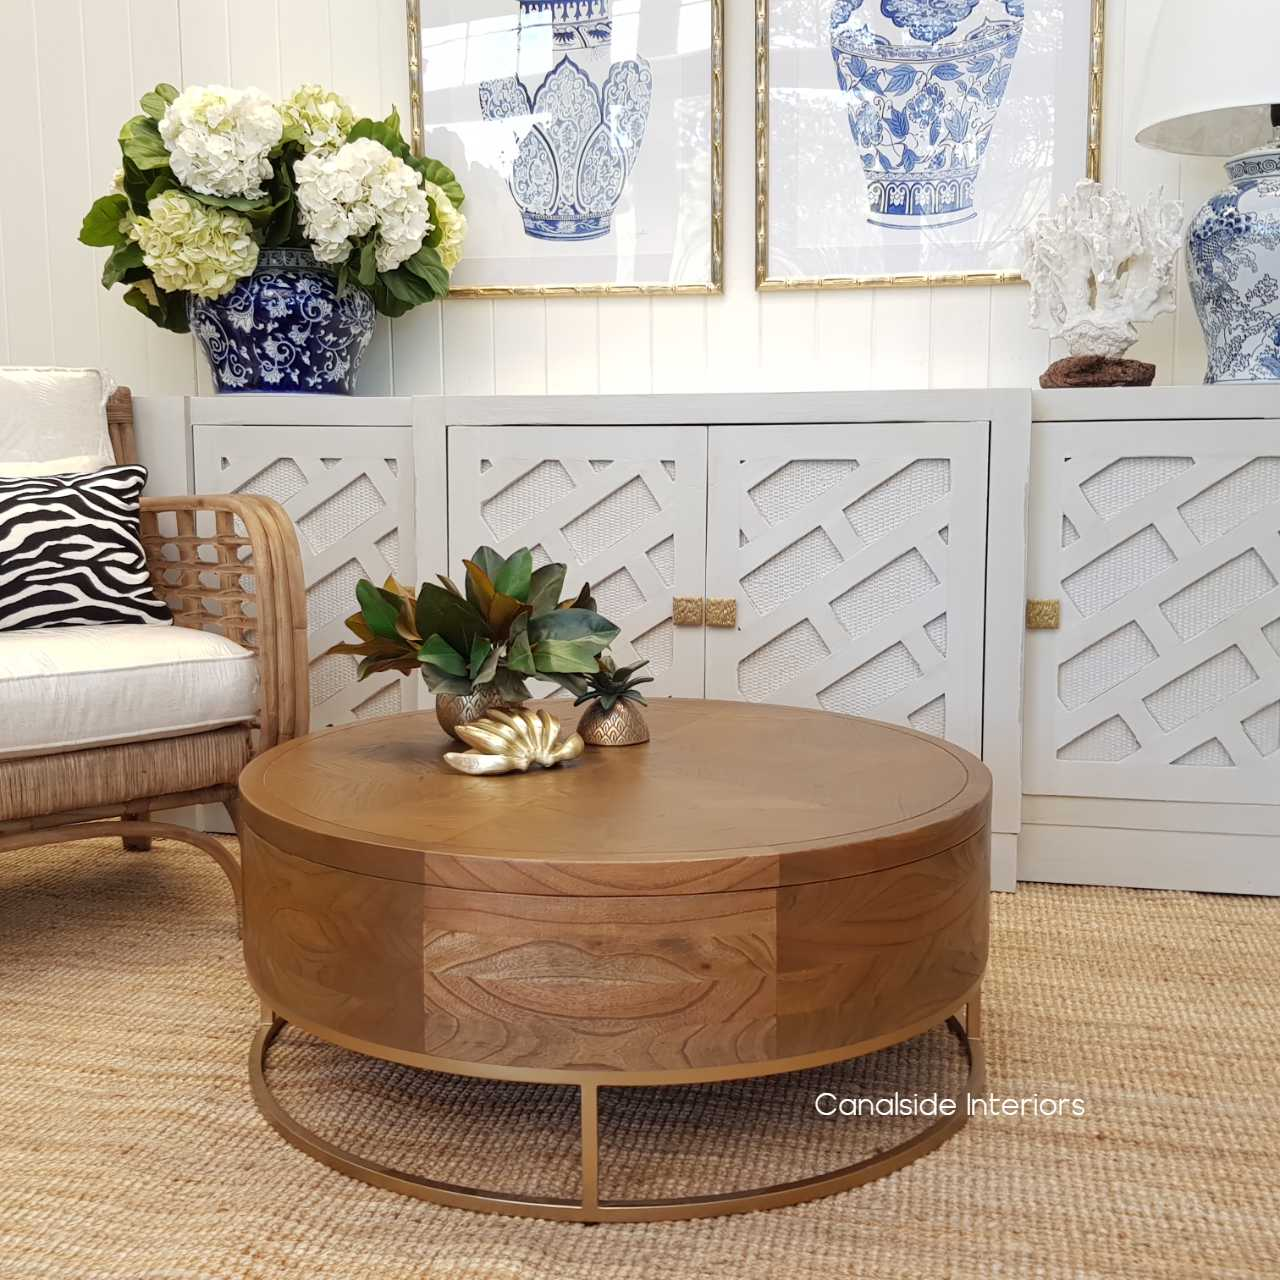 Picture of: Huxley Mosaic Gold Inlay Round Coffee Table With Storage In Stock Canalside Interiors